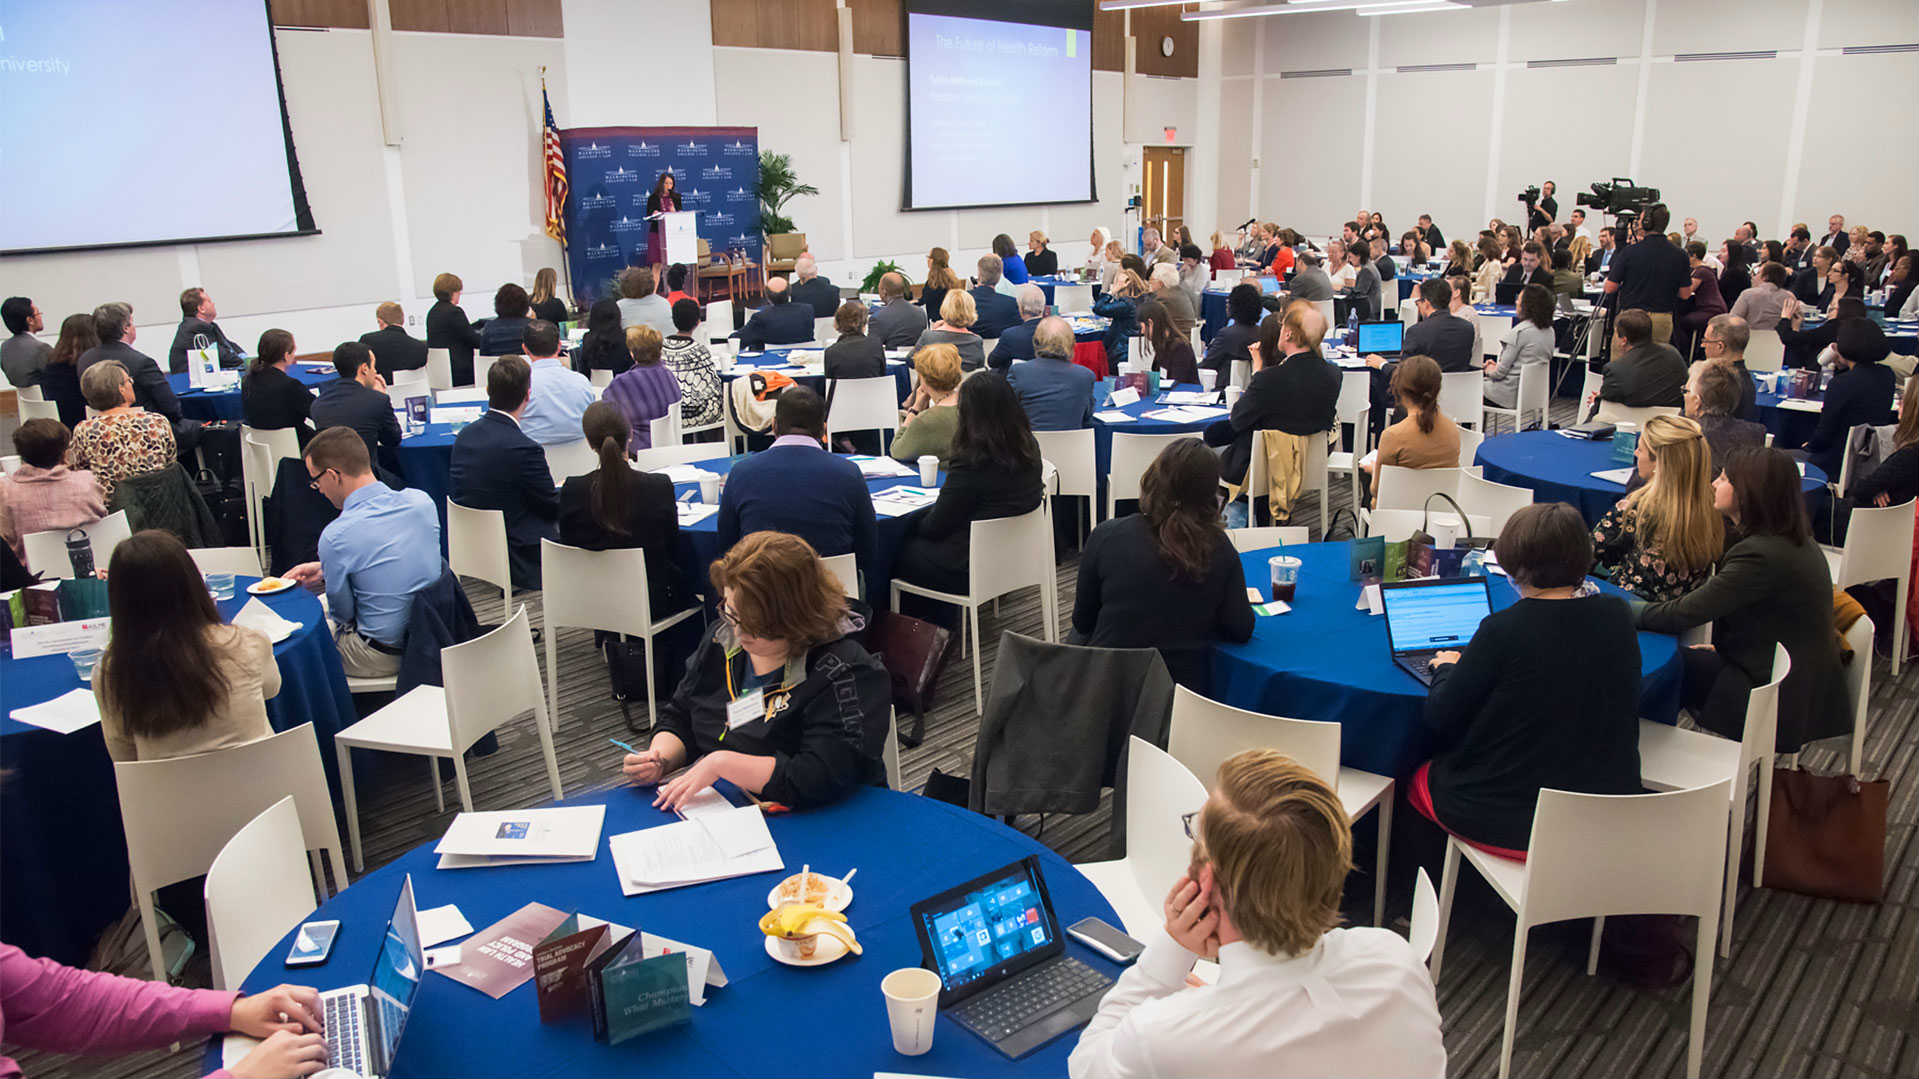 Our location in Washington, DC gives American University Washington College of Law access to the greatest legal minds the nation's capital has to offer, and our innovative programs continuously invite policymakers and top speakers to campus to address today's hottest topics. At AUWCL, you will hear from, meet, and network with the best!